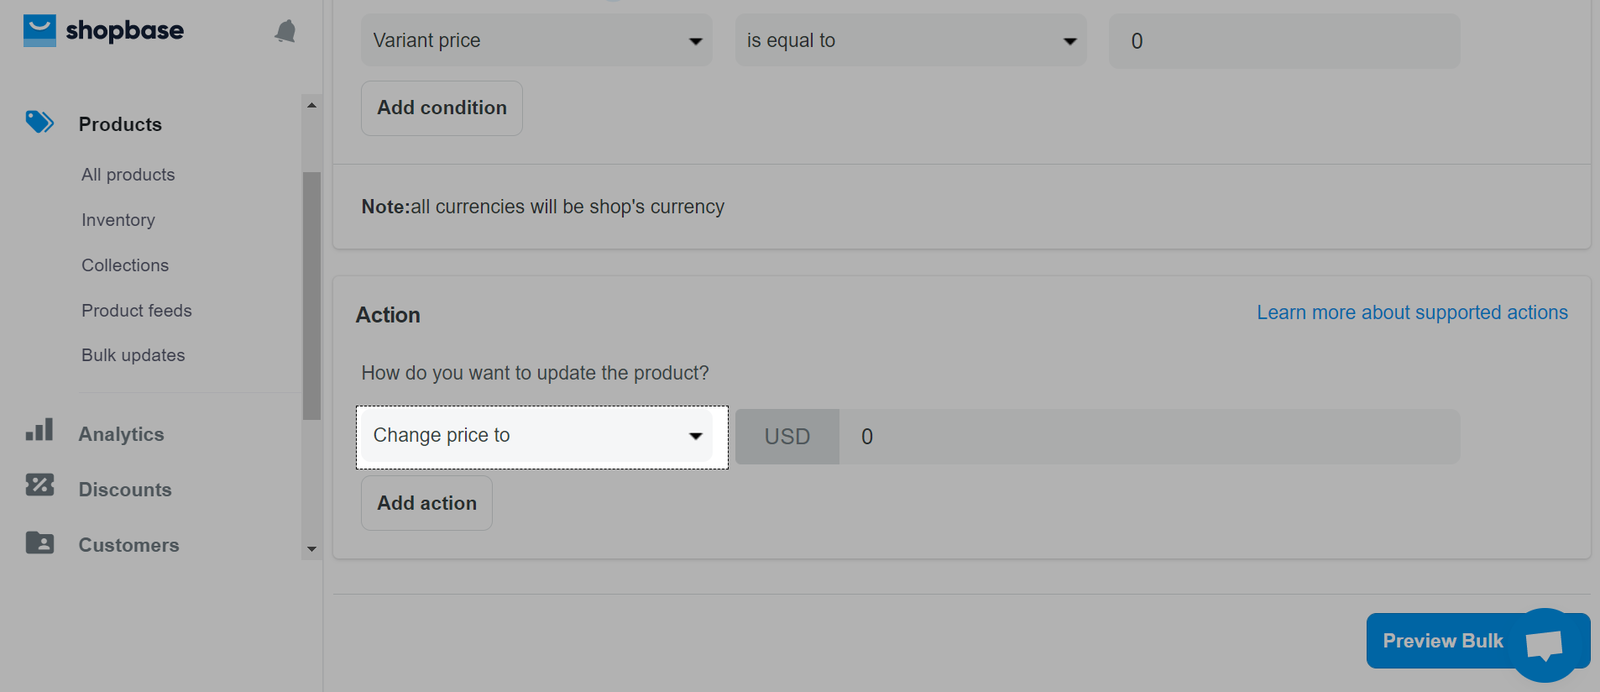 Click on the drop-down menu to choose the bulk update action you want